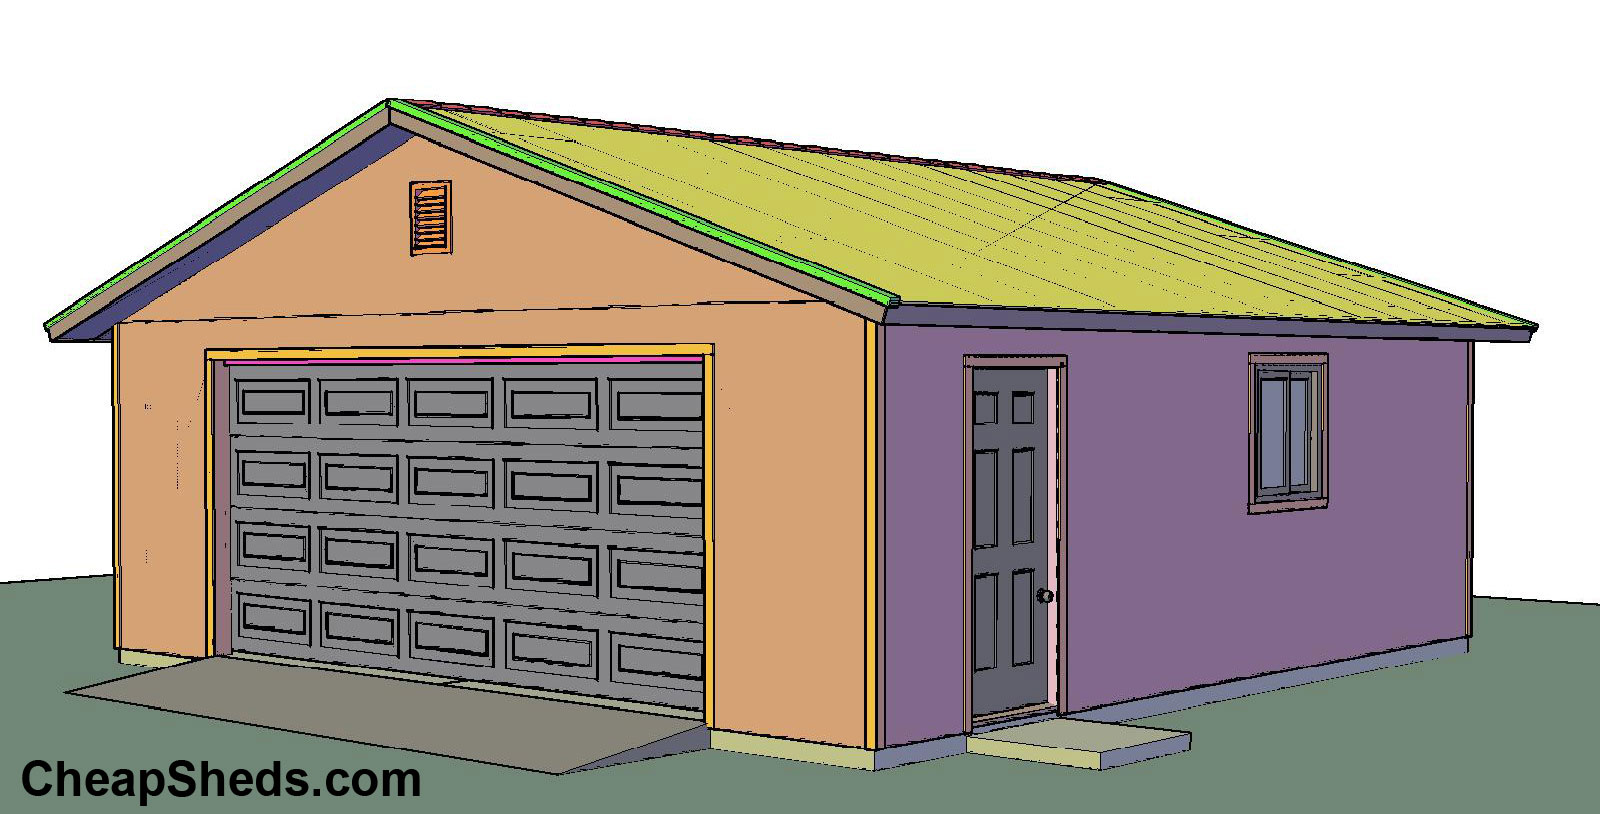 How to build and frame a 1 2 3 4 car garage plans for Garage blueprints